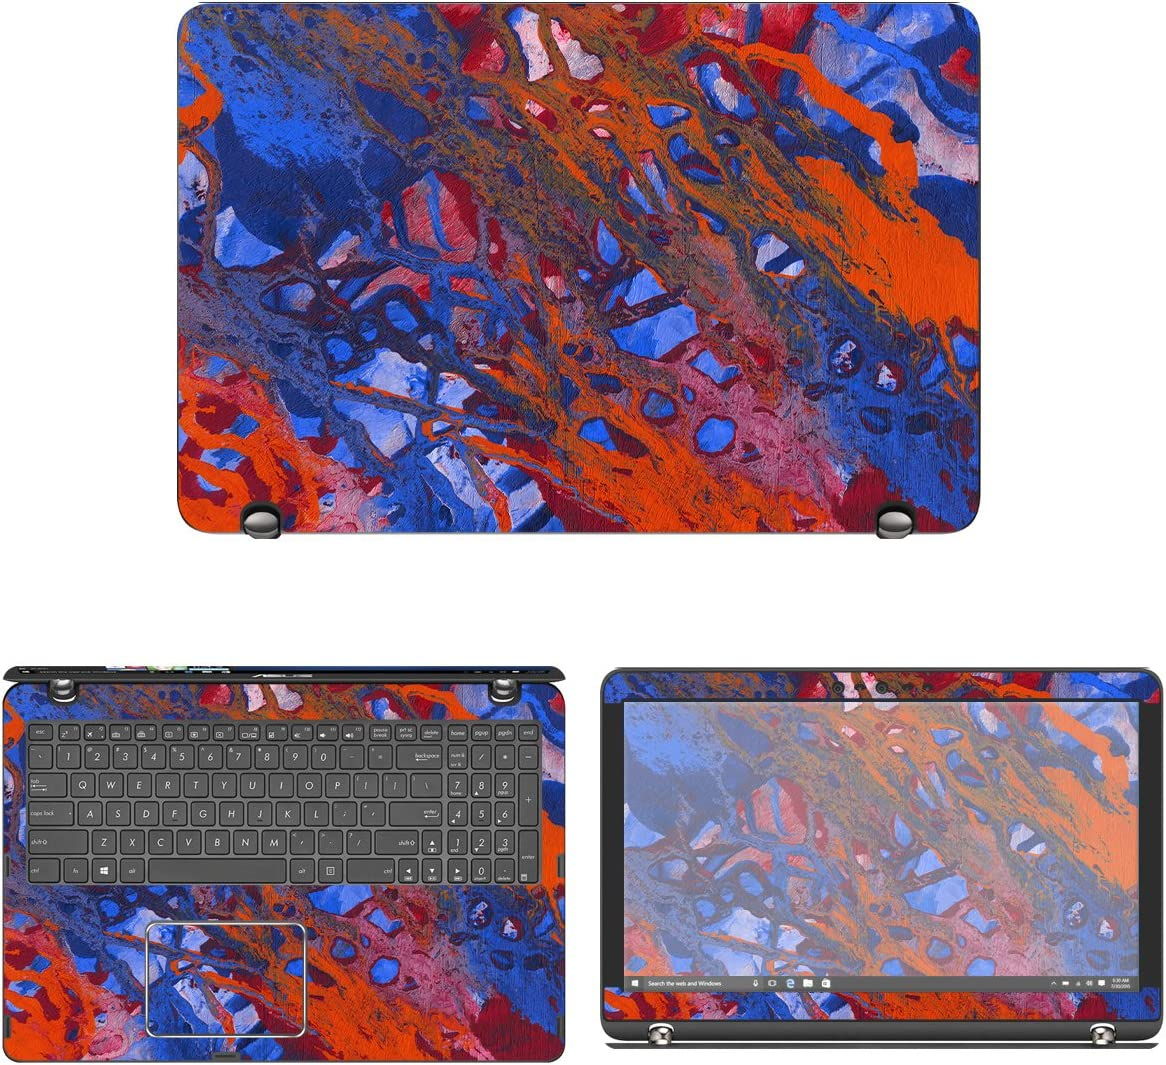 Decalrus Some reservation - Discount is also underway Protective Decal Skin Asus for Q524U Q534UX Sticker